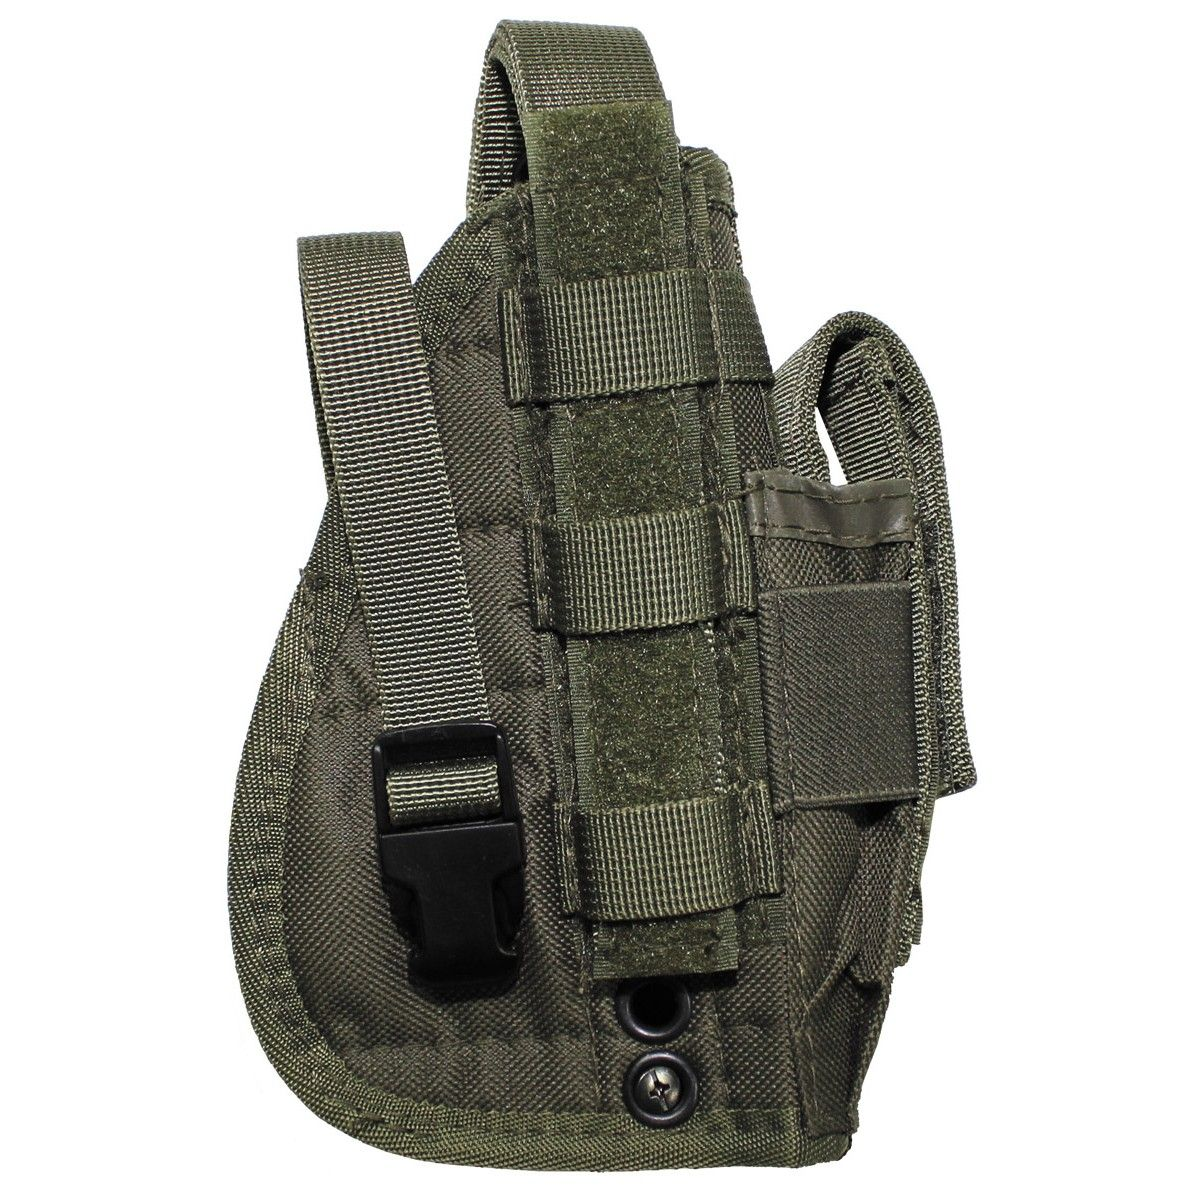 Mfh Tactical Molle Holster Green